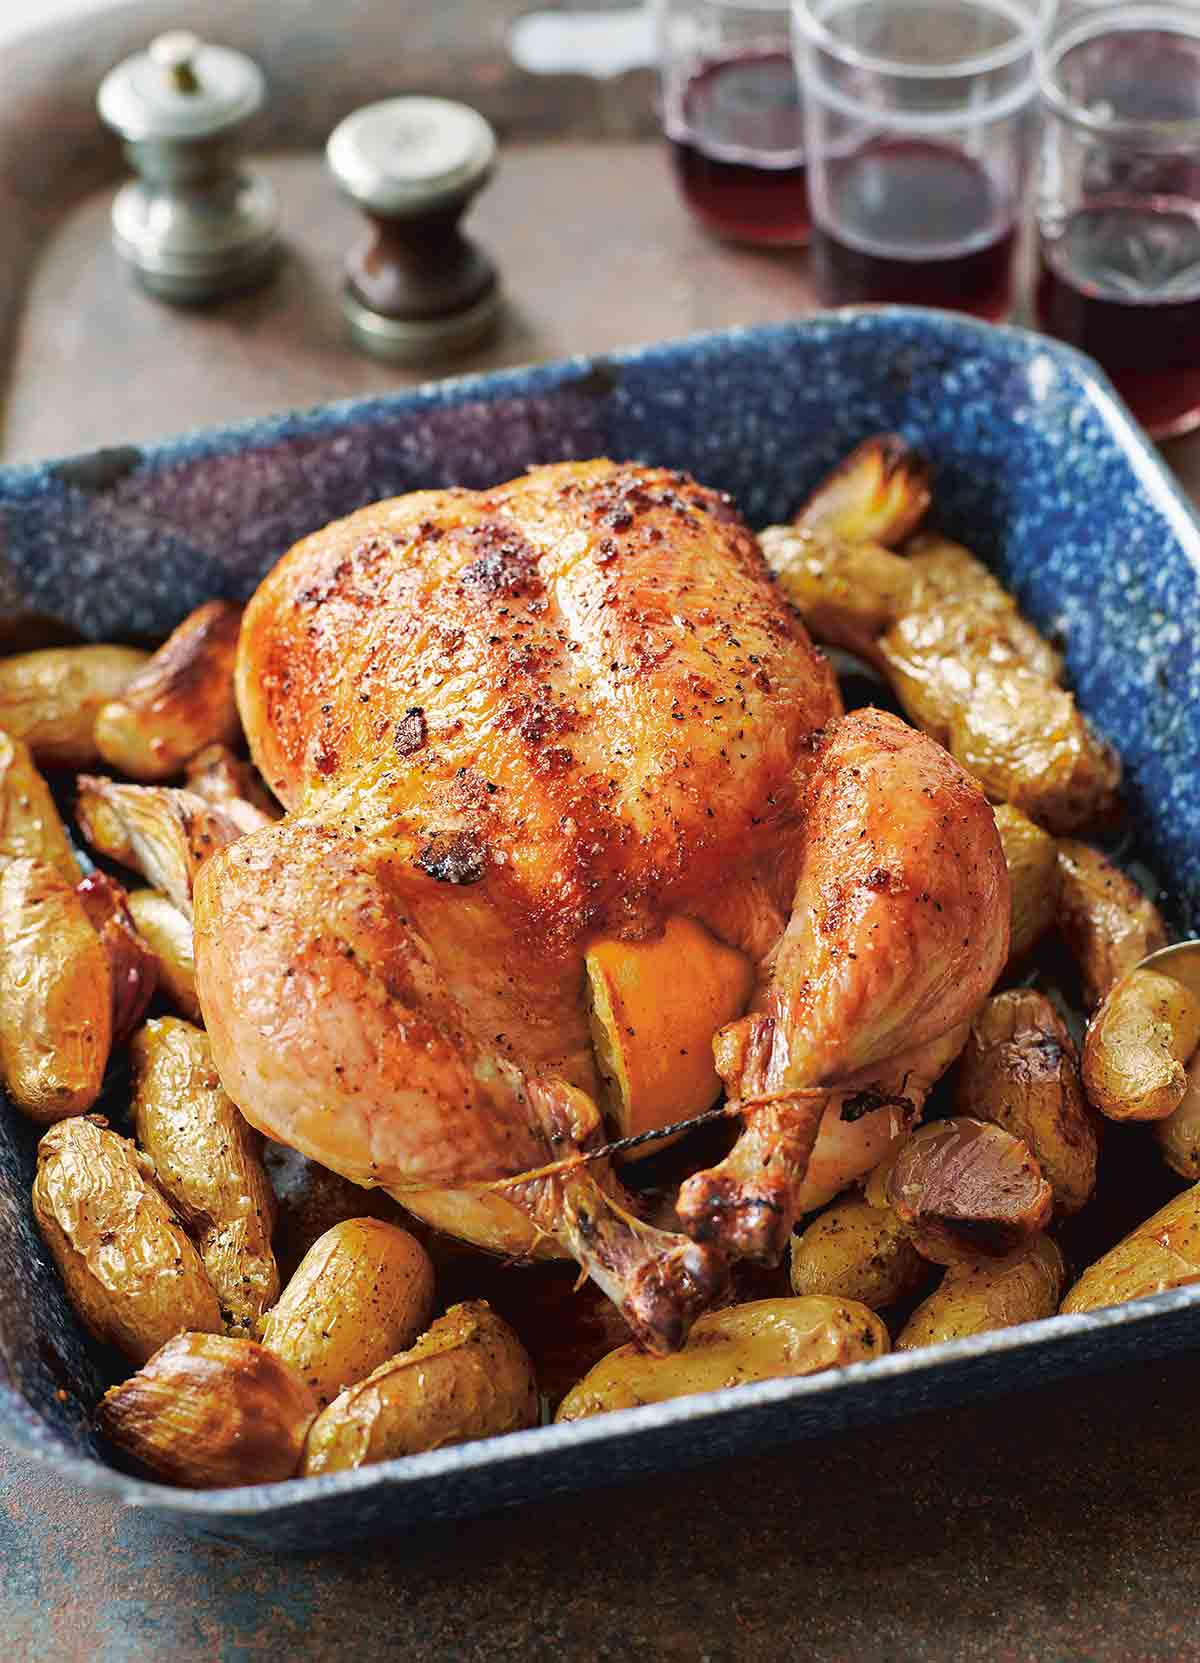 A whole maple roast chicken set on top of potatoes and shallots in a blue baking dish.